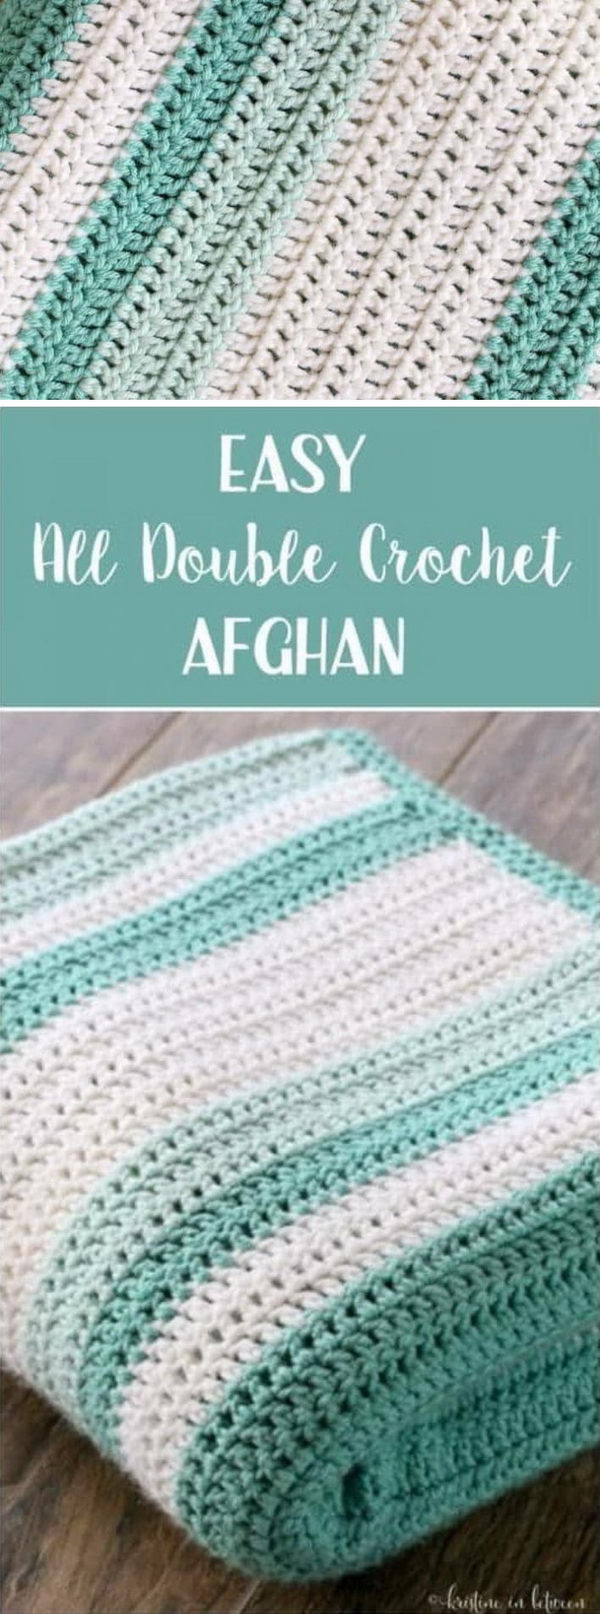 Simple Beginner Afghan With All Double Crochet Stitches.